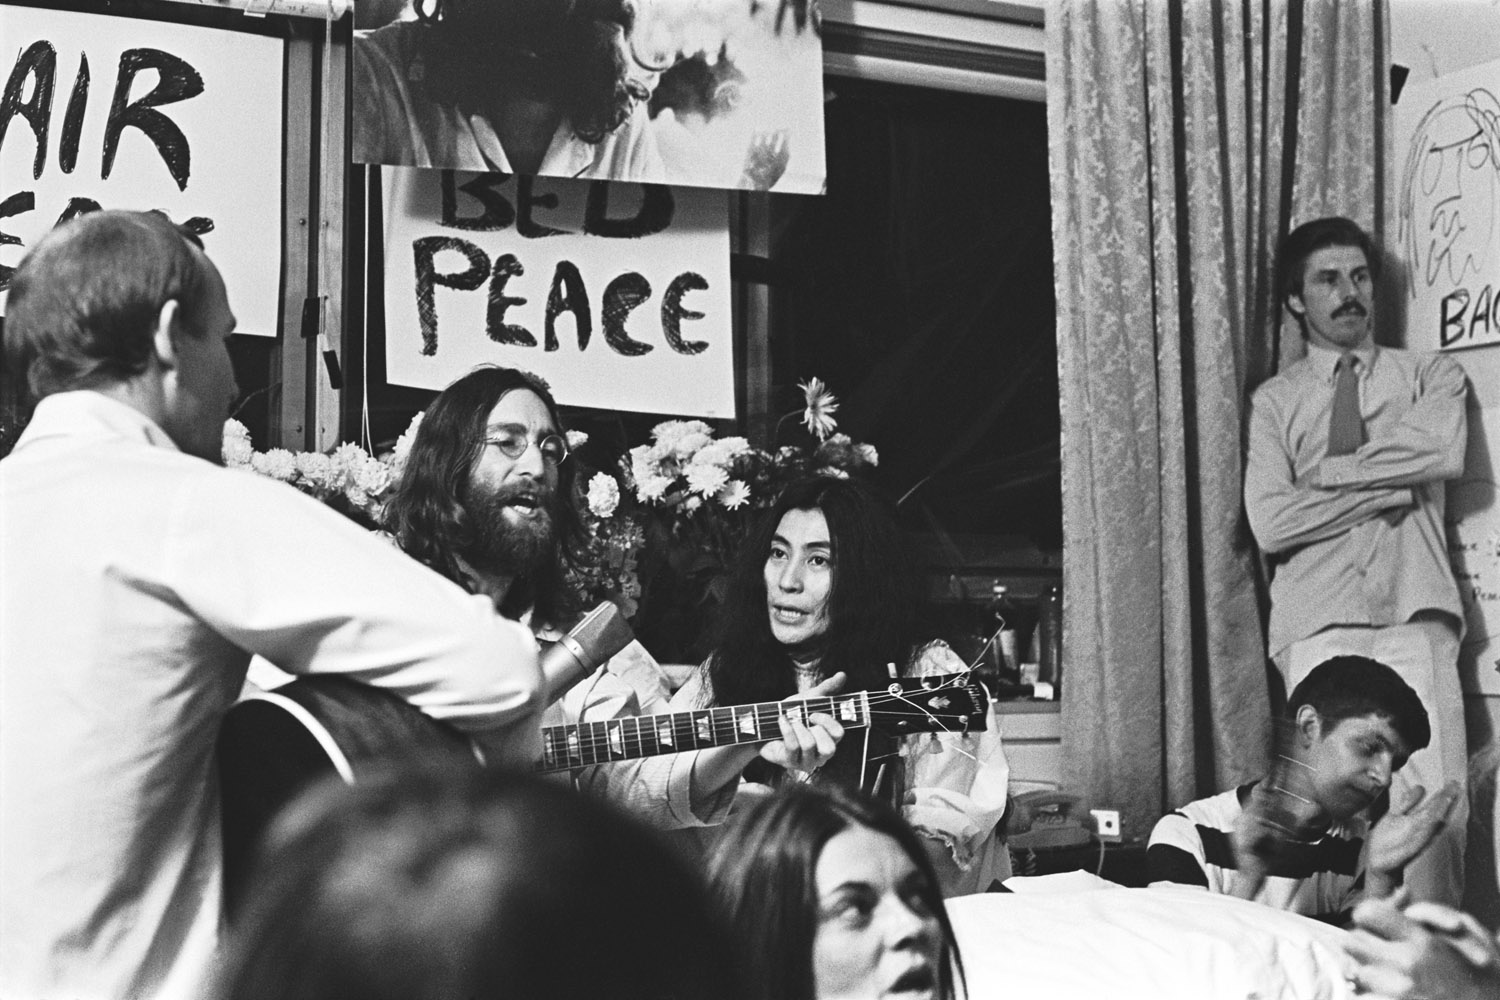 The couple sits among friends Tommy Smothers, far left, and Derek Taylor, standing far right, singing  Give Peace a Chance.